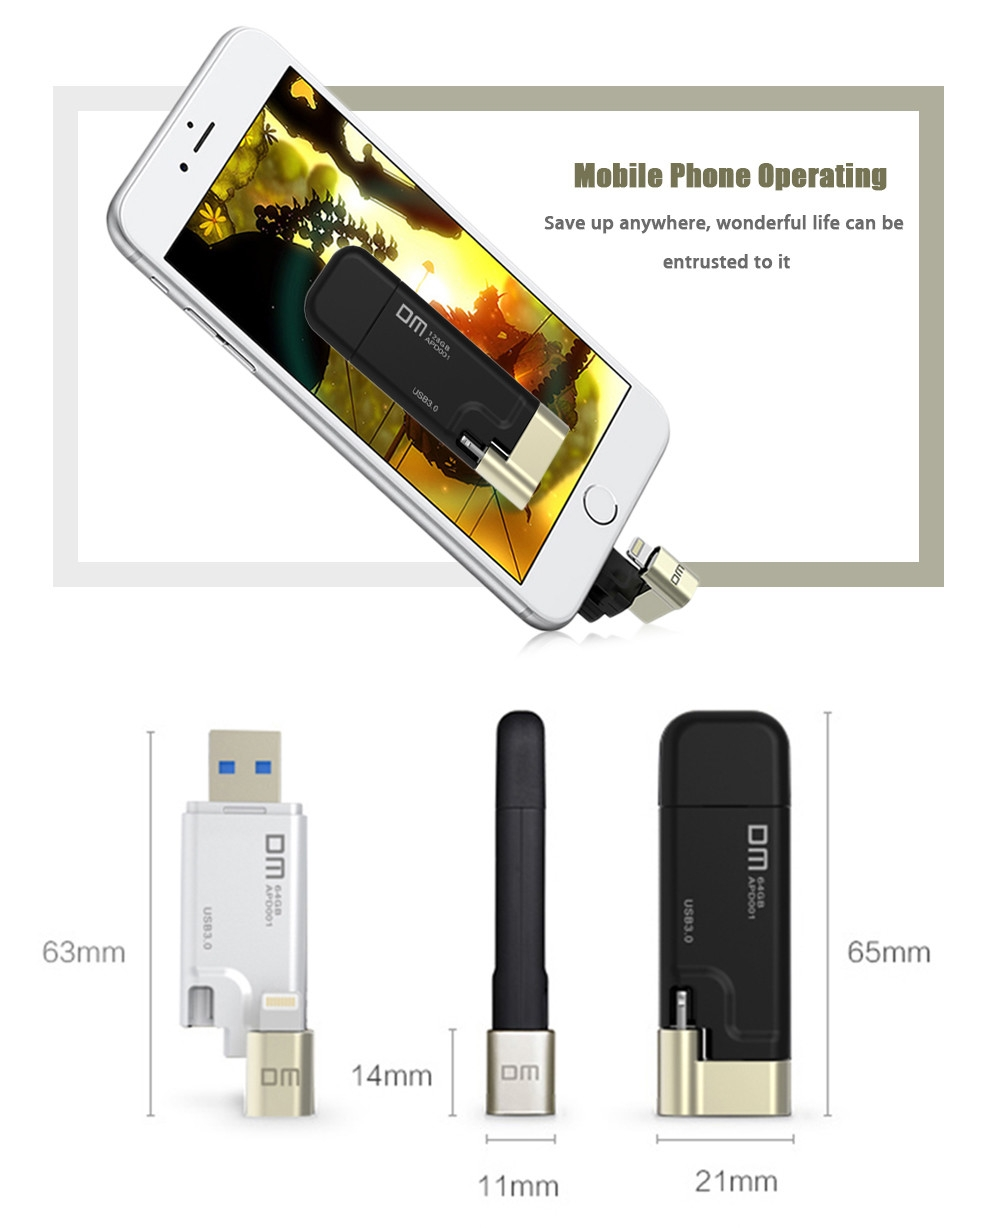 DM APD001 32GB USB 3.0 8 Pin OTG U Disk Data Transmission Drive for iPhone / iPad